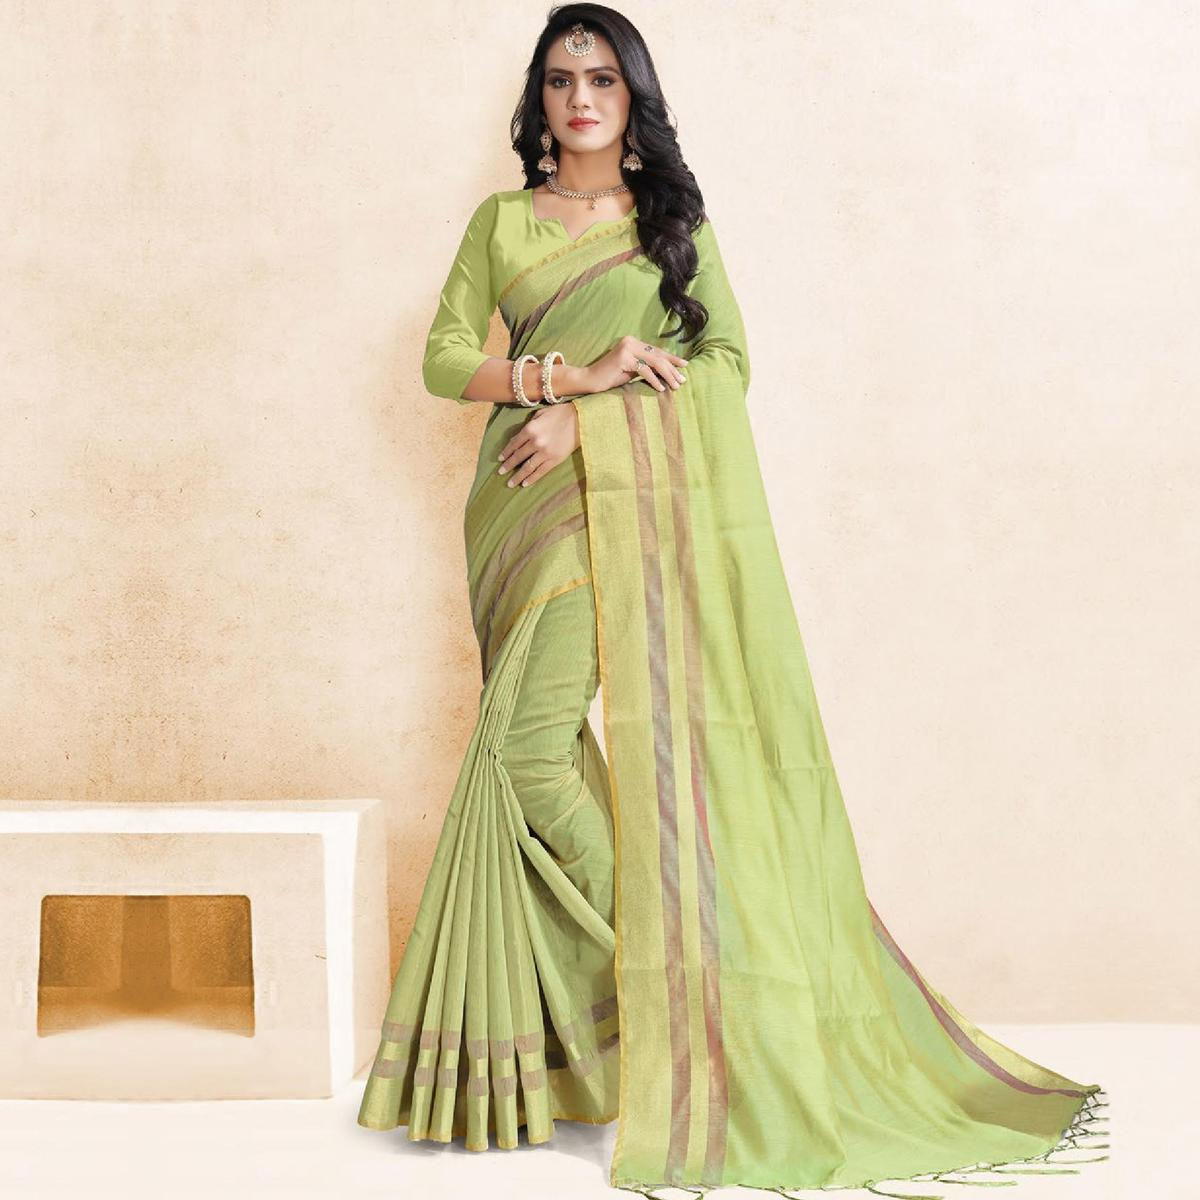 Opulent Pista Green Colored Festive Wear Manipuri Silk Saree